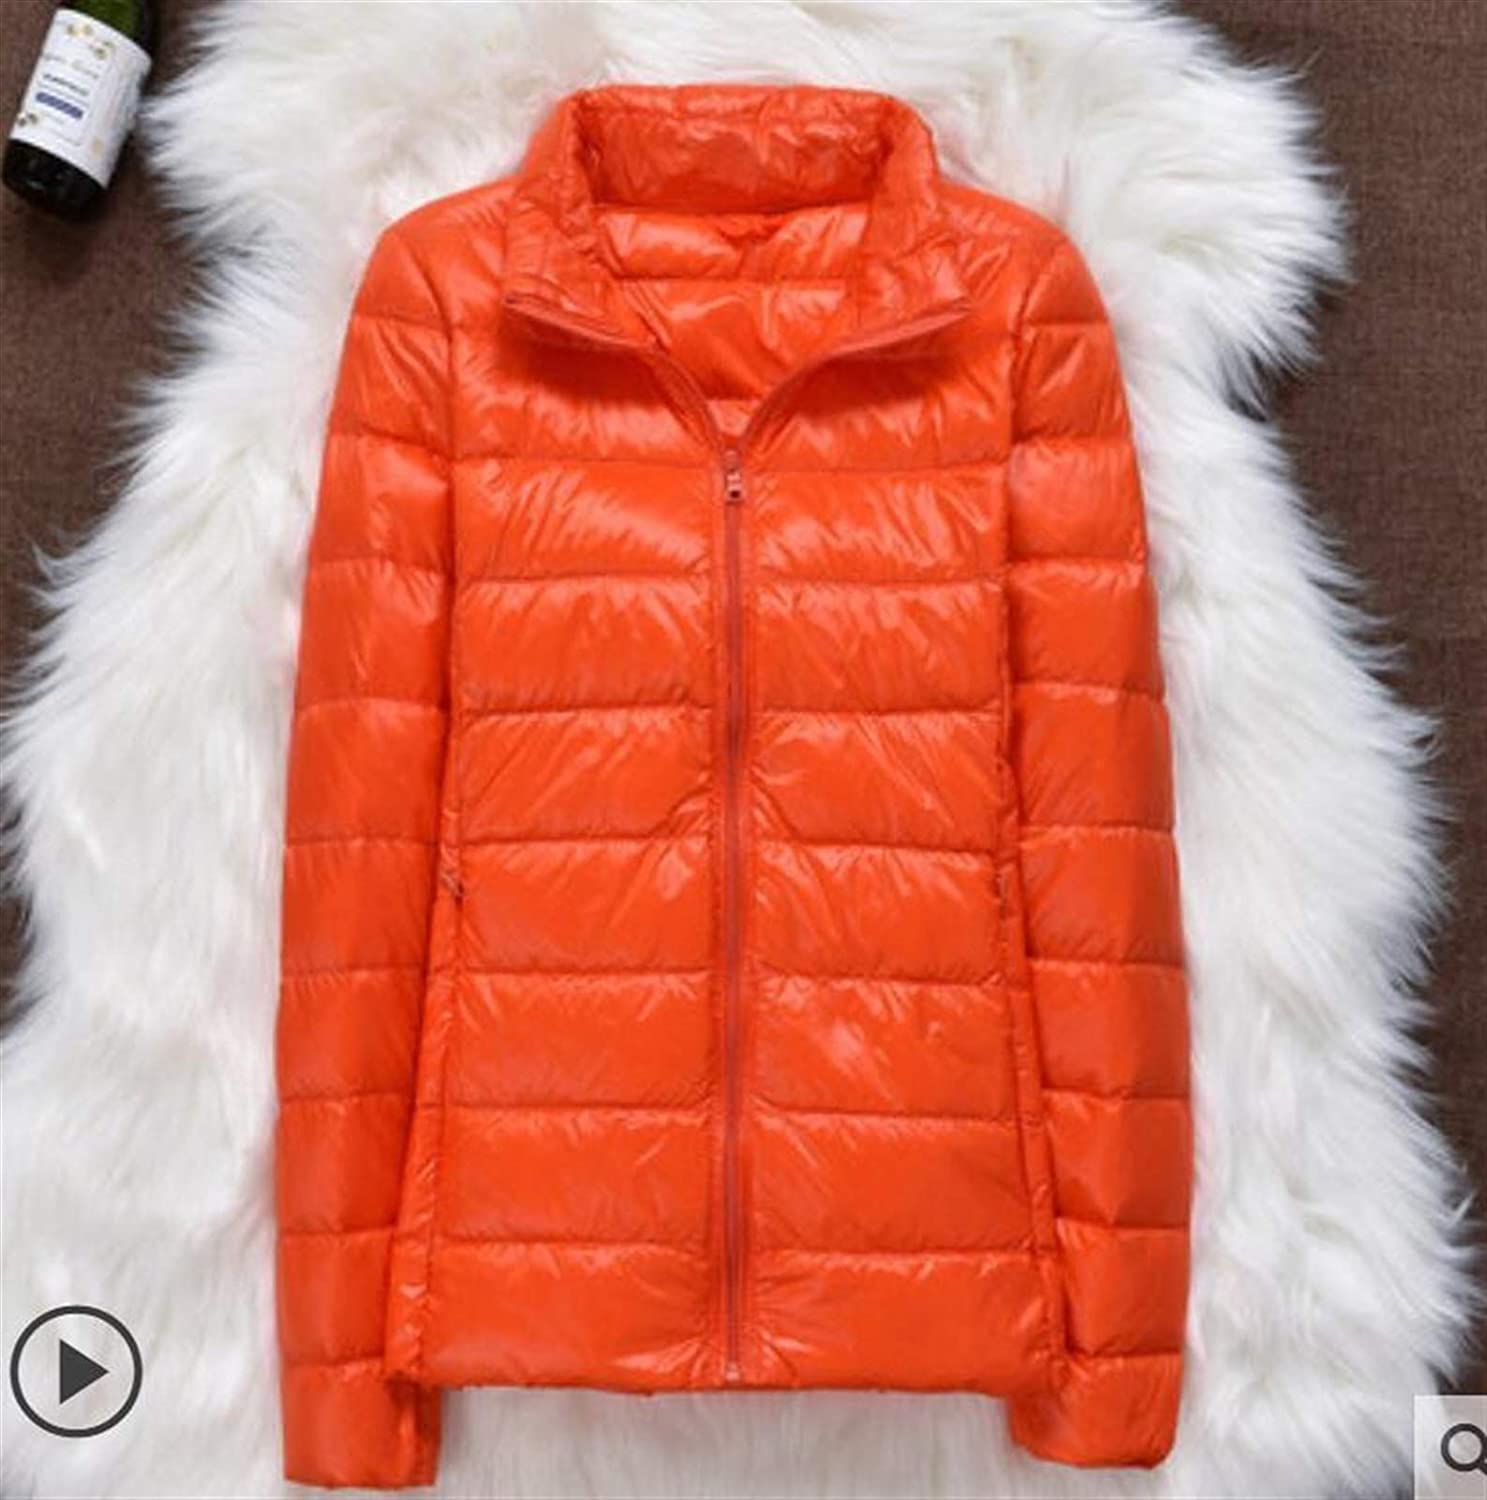 Thickened Popular brand Down Jacket Leather Plaid Coat New Light Sale special price Winter Ultra